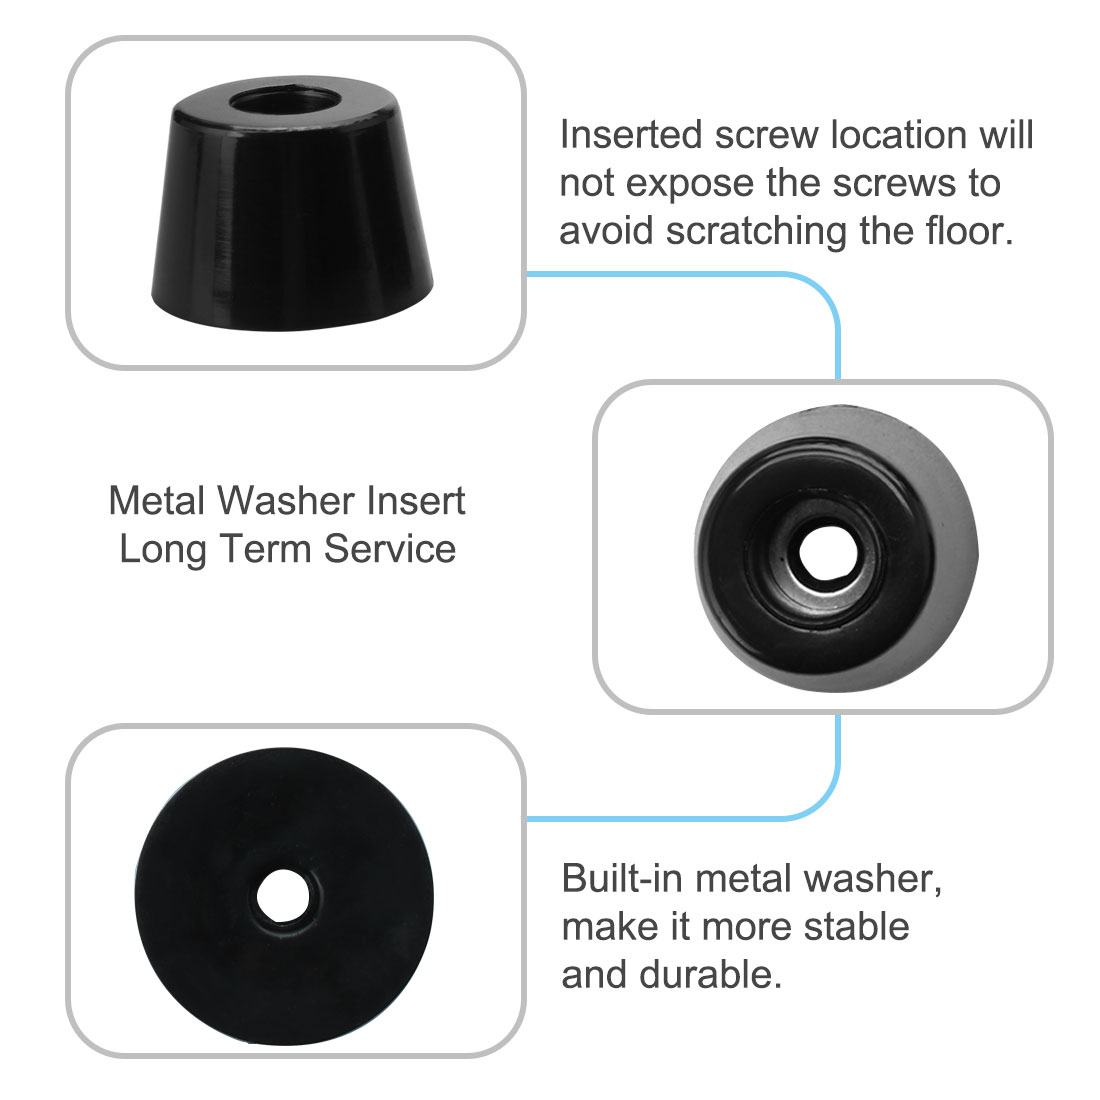 16pcs Rubber Feet Bumper Buffer Chair Leg Pad with Metal Washer, D26x21xH18mm - image 5 de 7